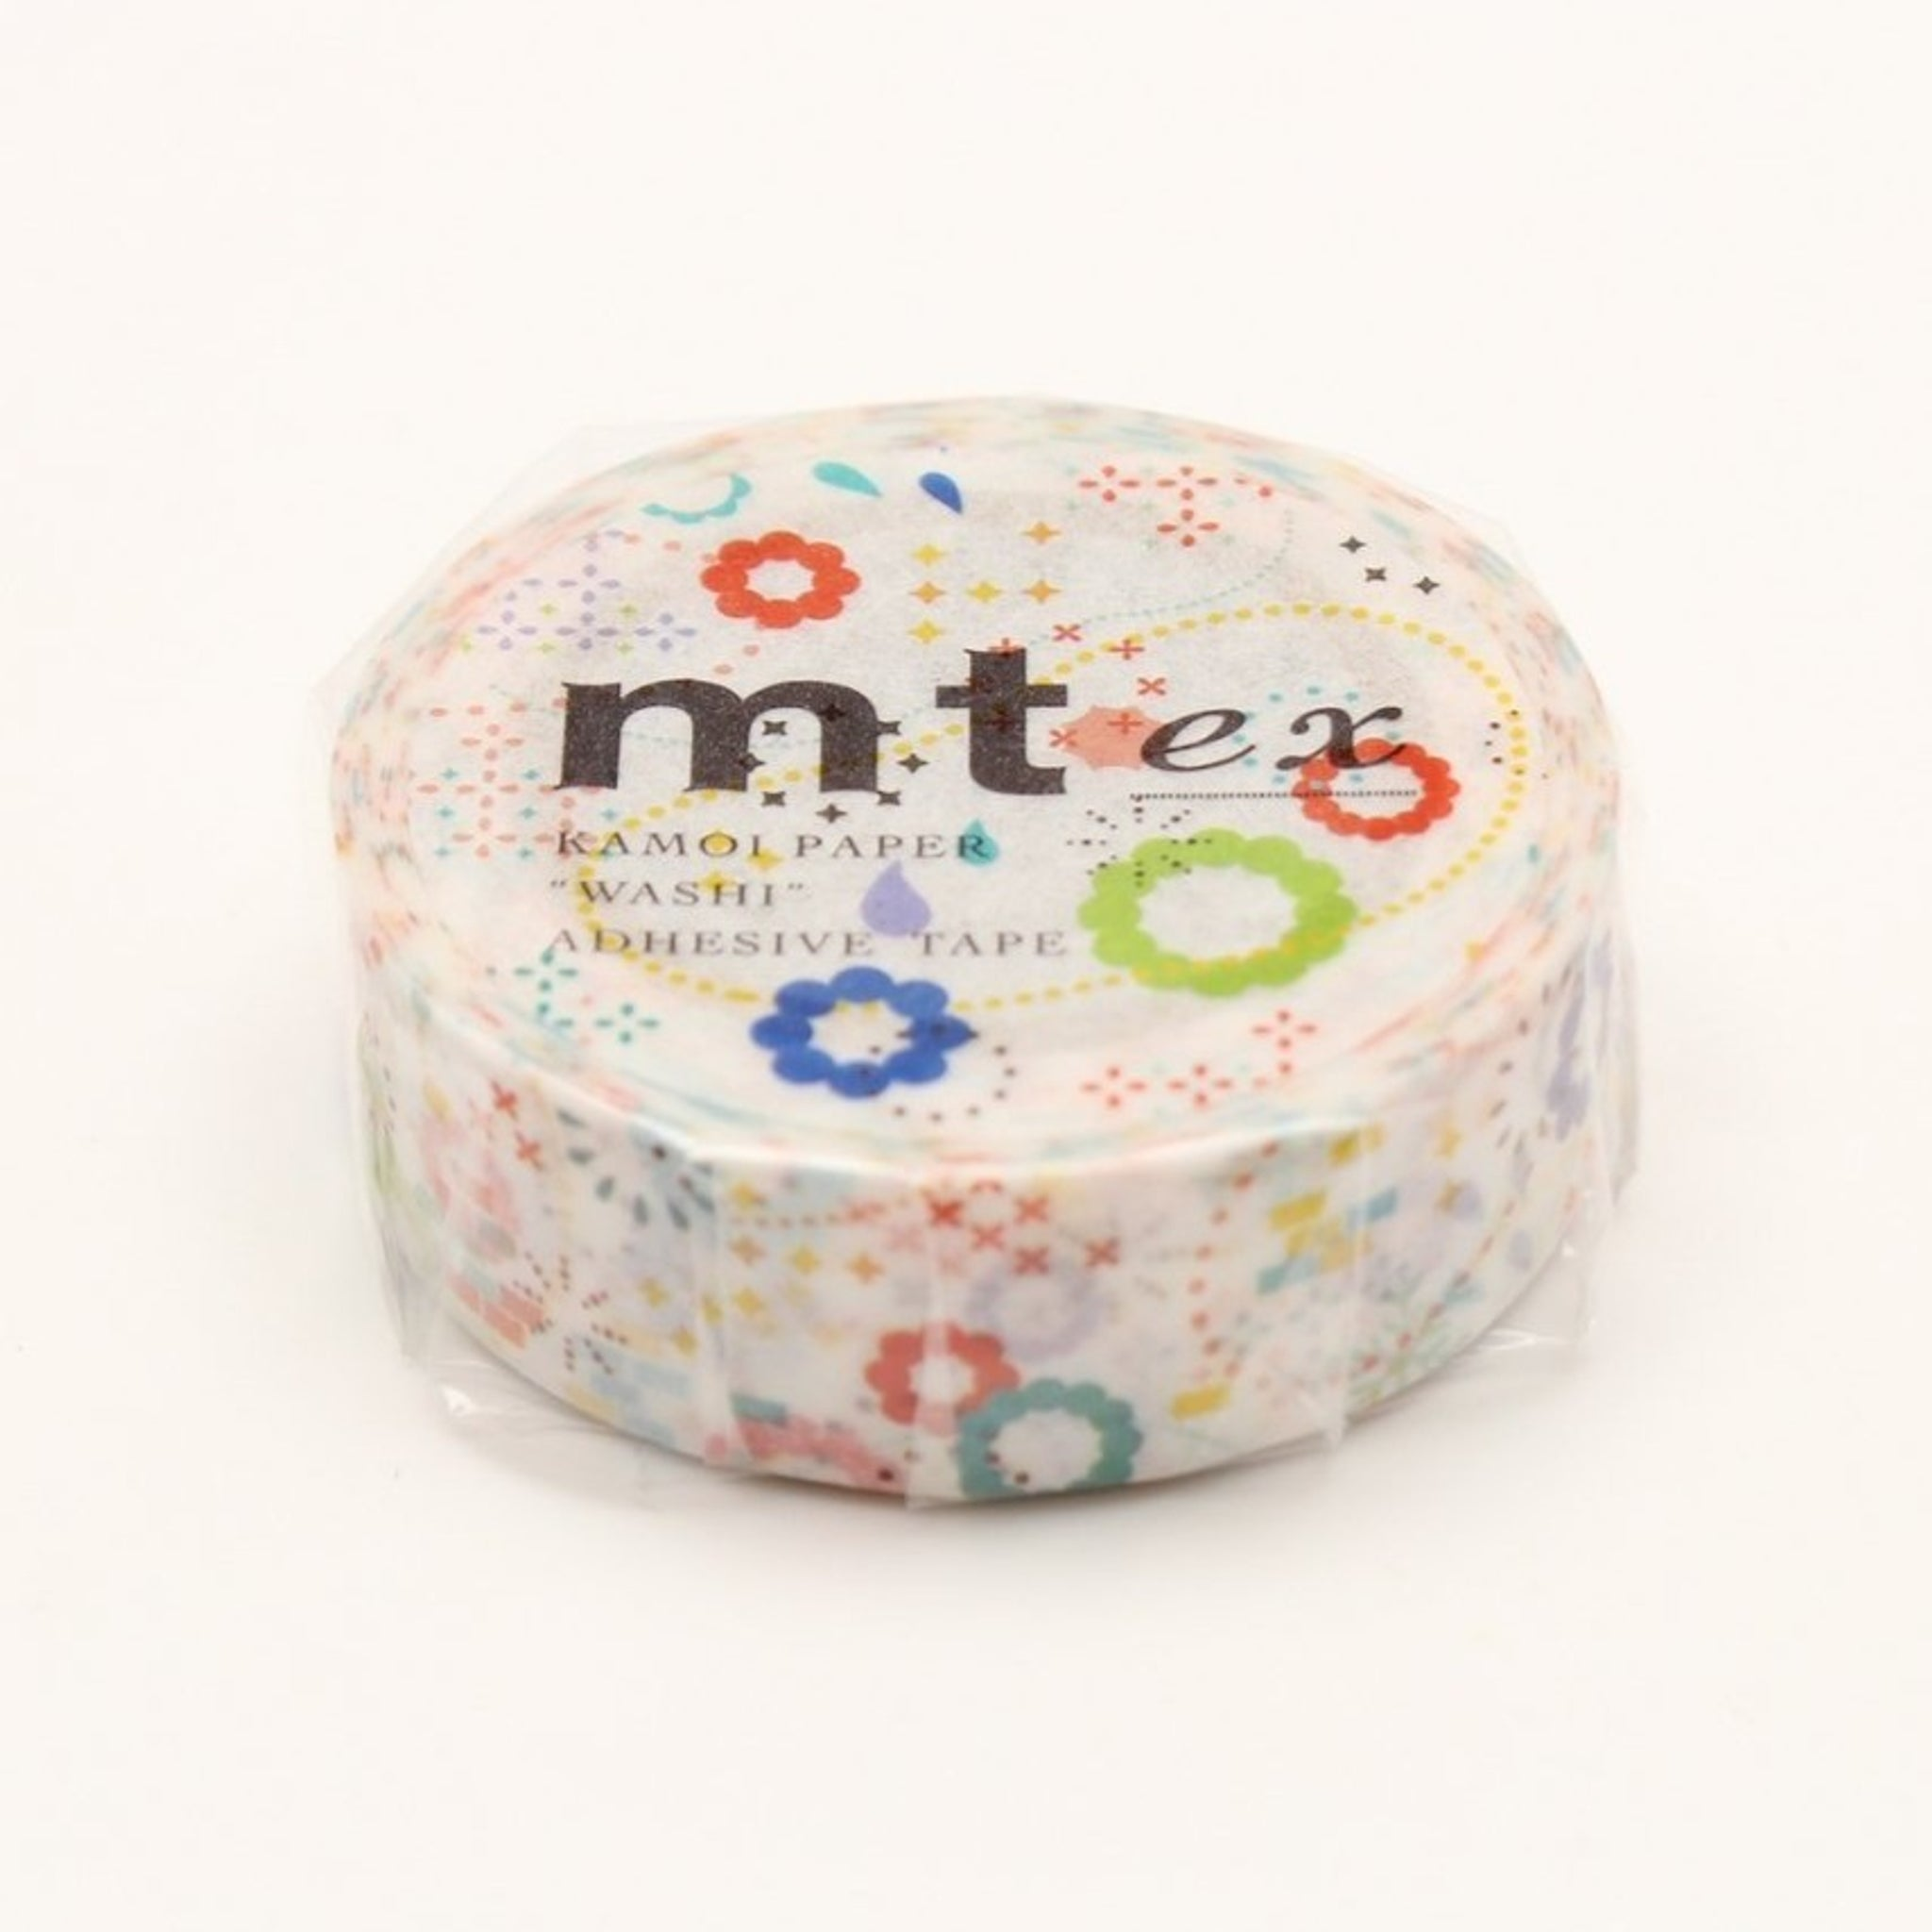 MT EX Washi Tape Colorful Pop